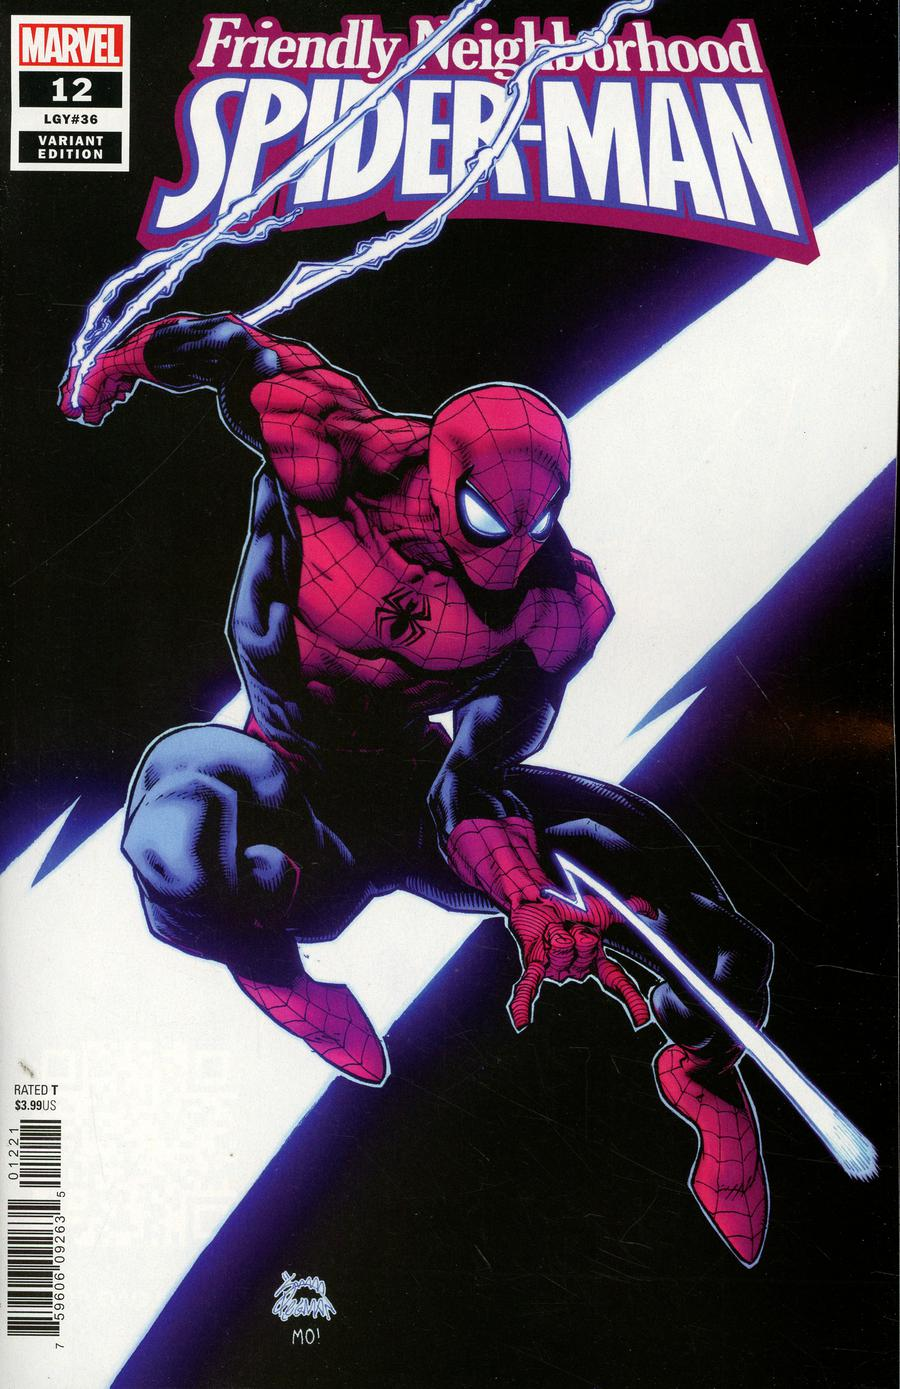 Friendly Neighborhood Spider-Man Vol 2 #12 Cover B Variant Cover